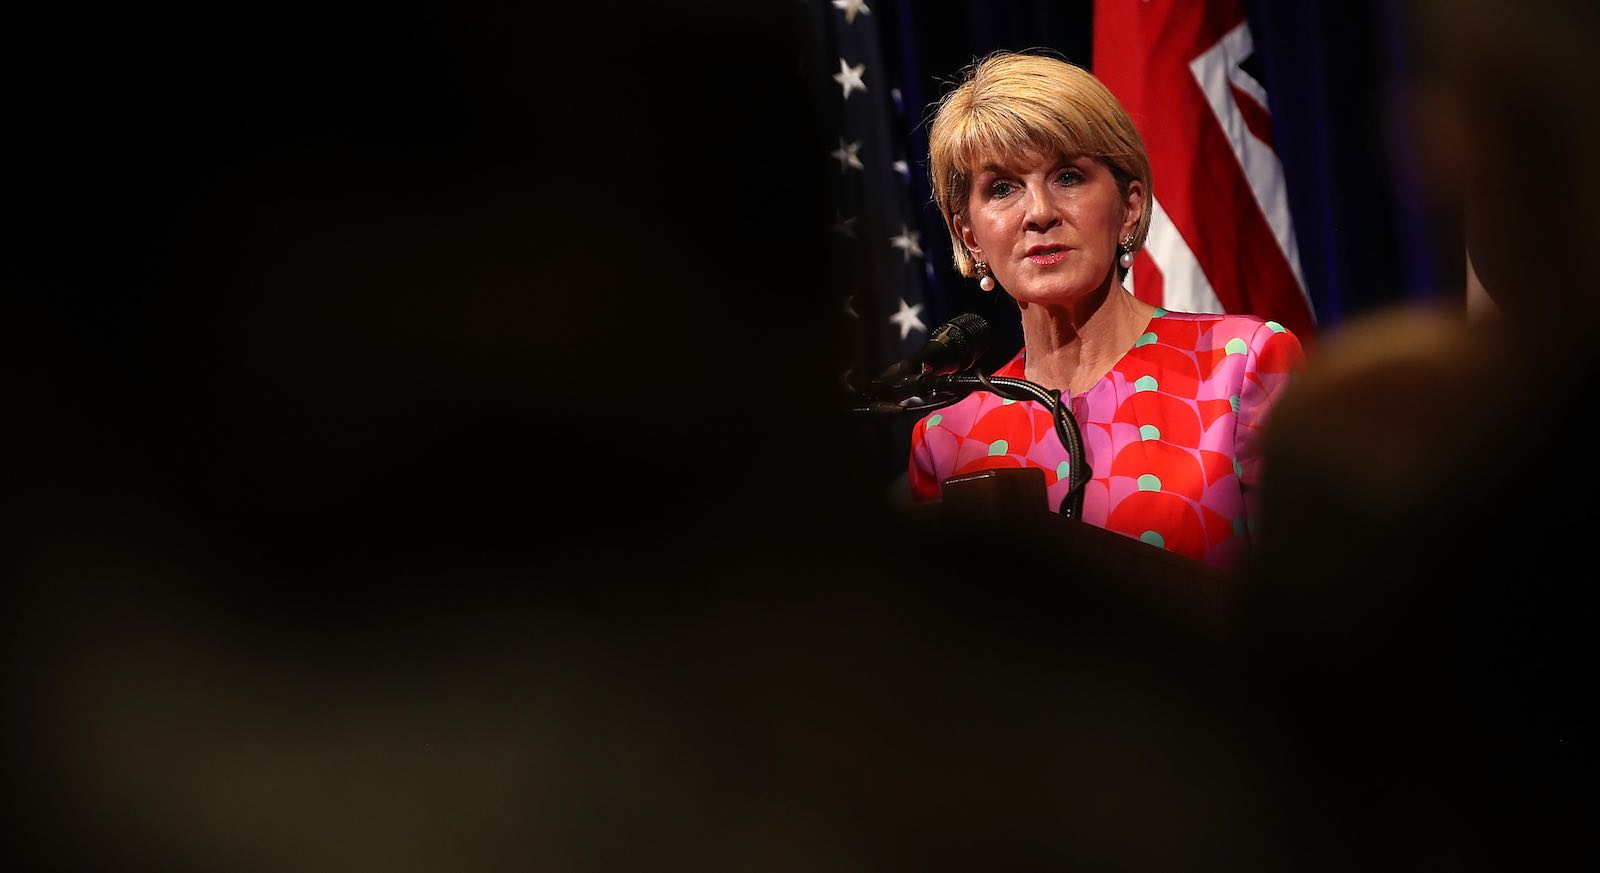 Julie Bishop at Stanford University, California, for the Australia-US Ministerial meeting in July (Photo: Justin Sullivan/Getty)